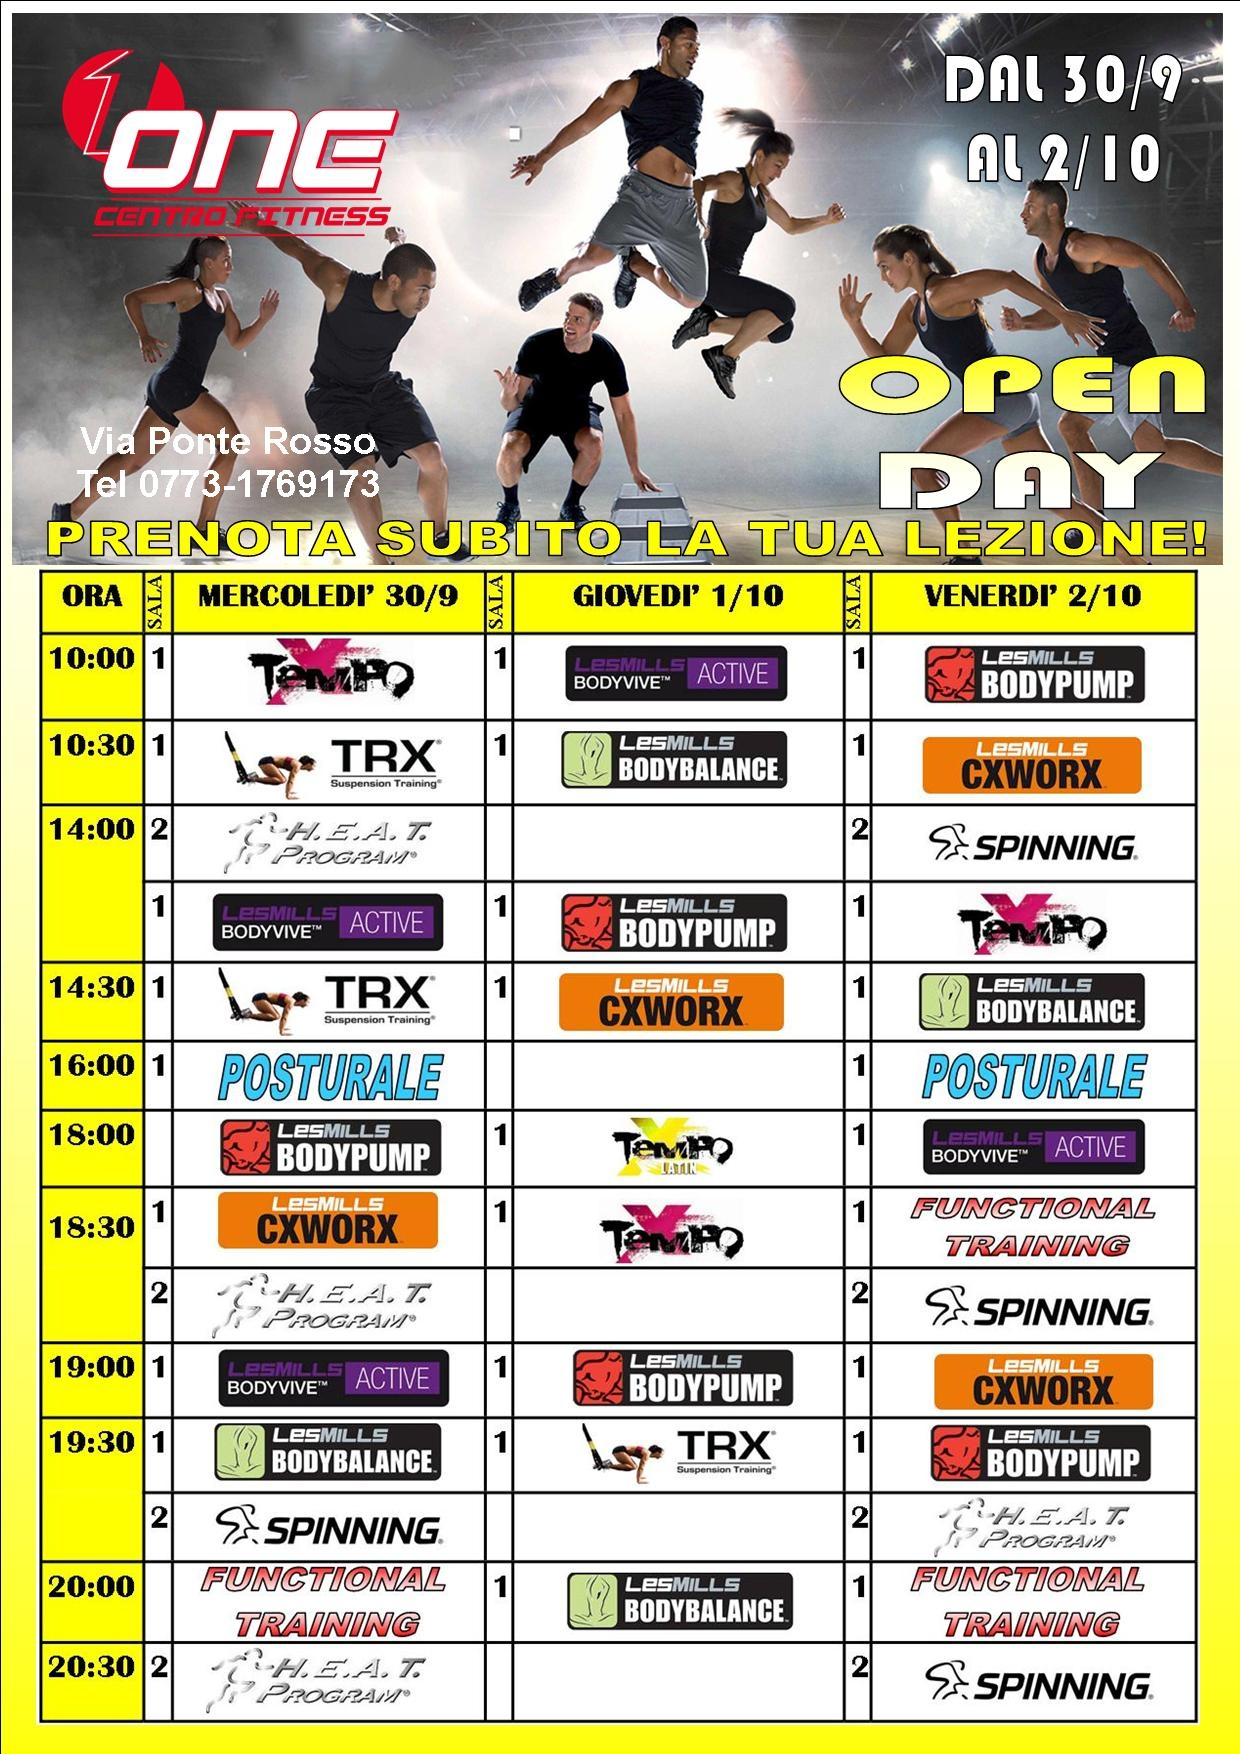 Open Day alla One Fitness. Anxur Time